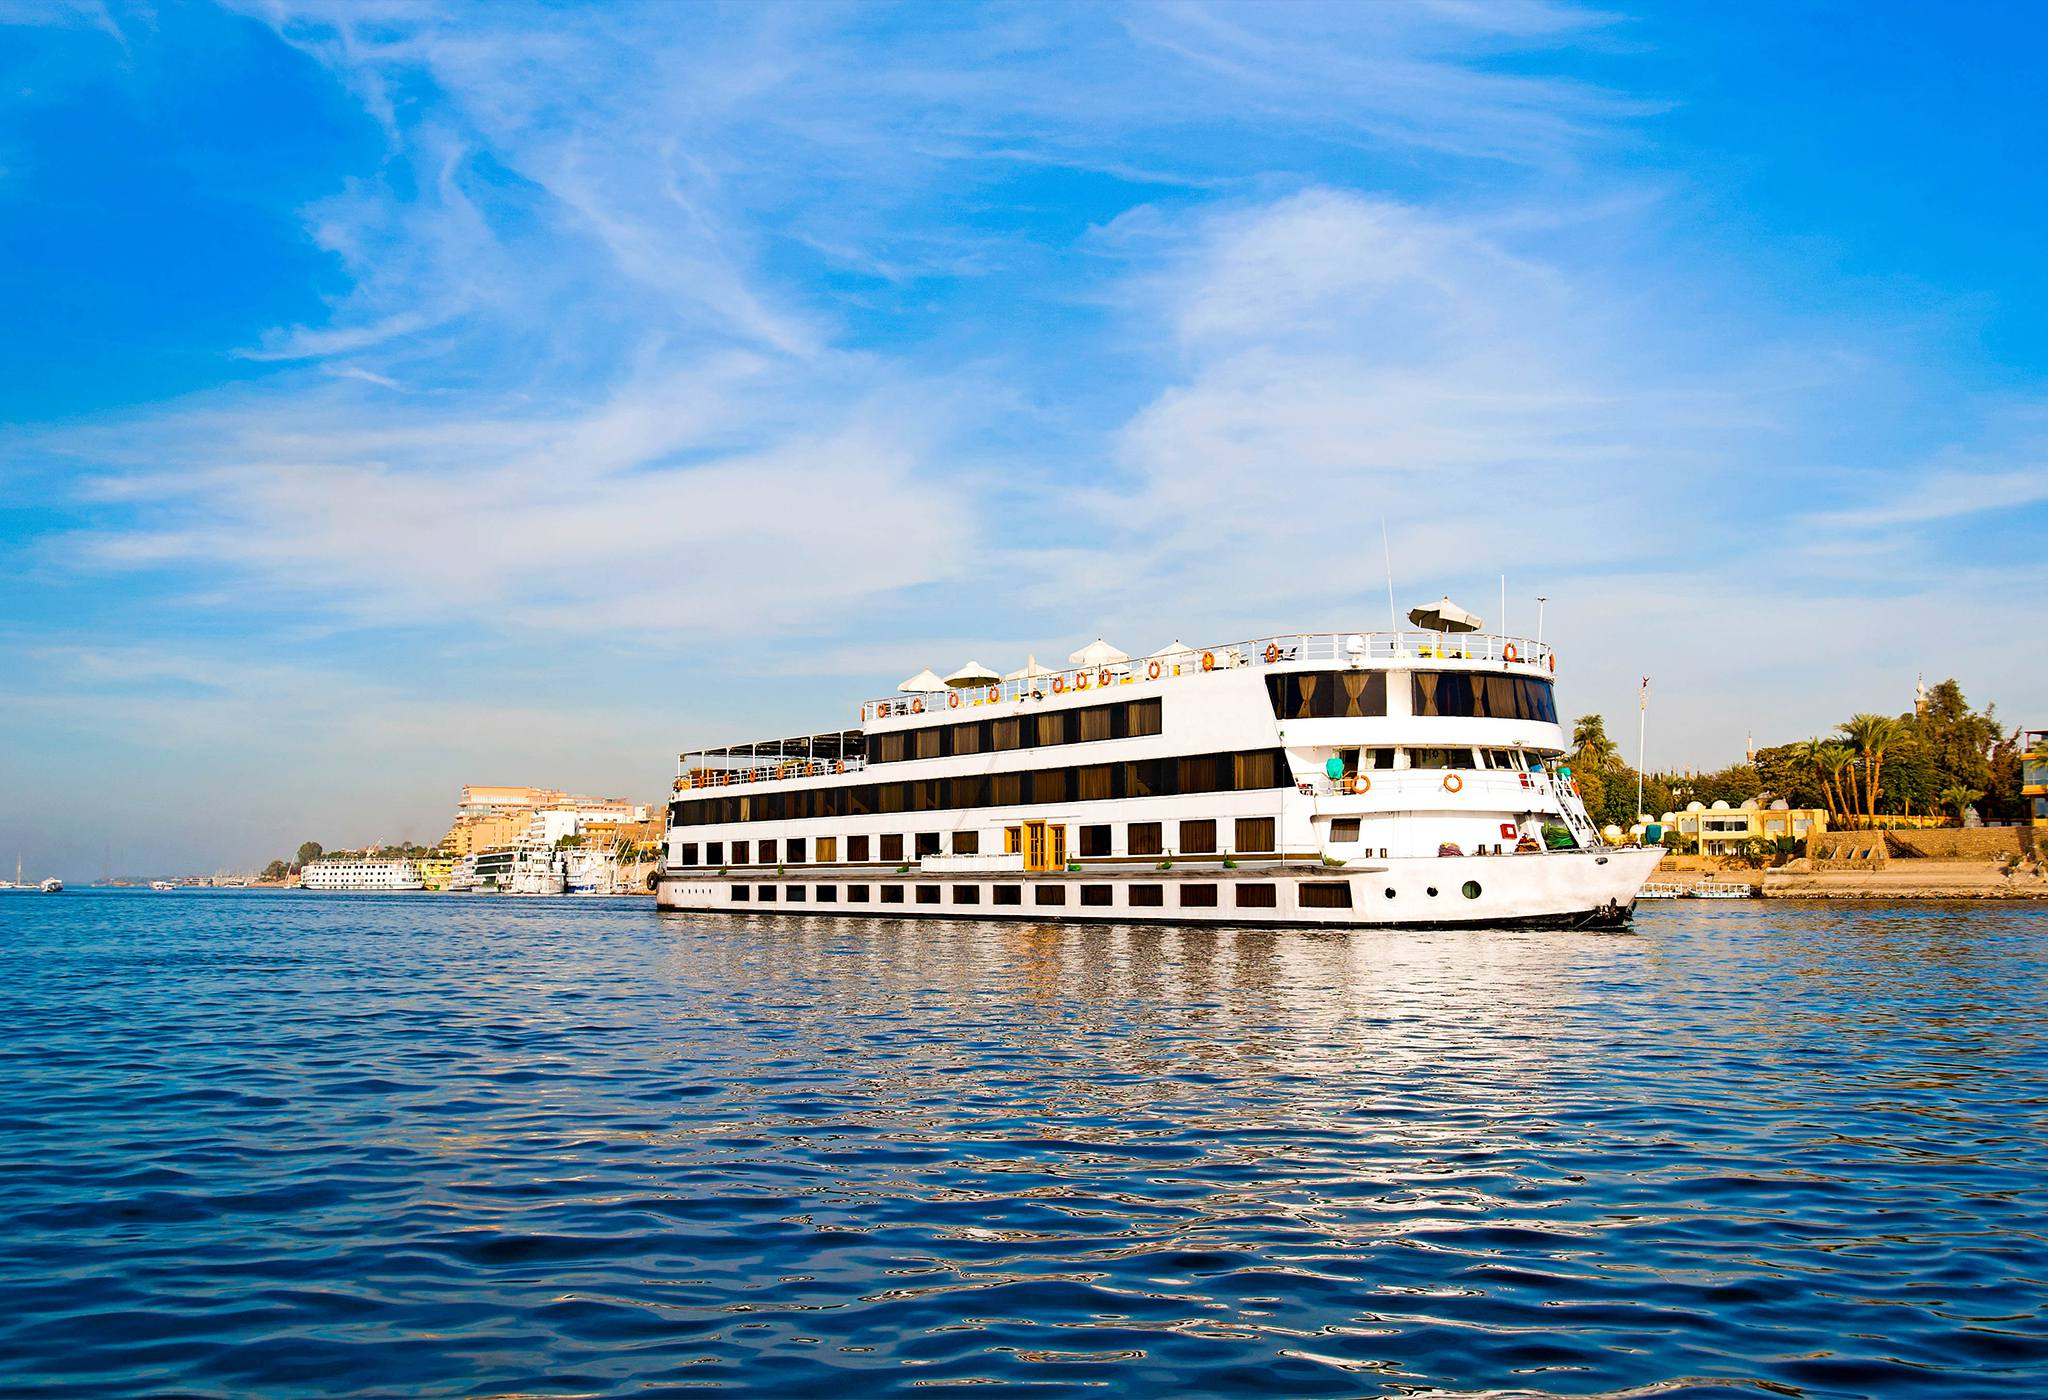 Egypt Nile Cruise Packages 2020/2021 | Nile River Cruise to Luxor Aswan - Egypt Tours Portal